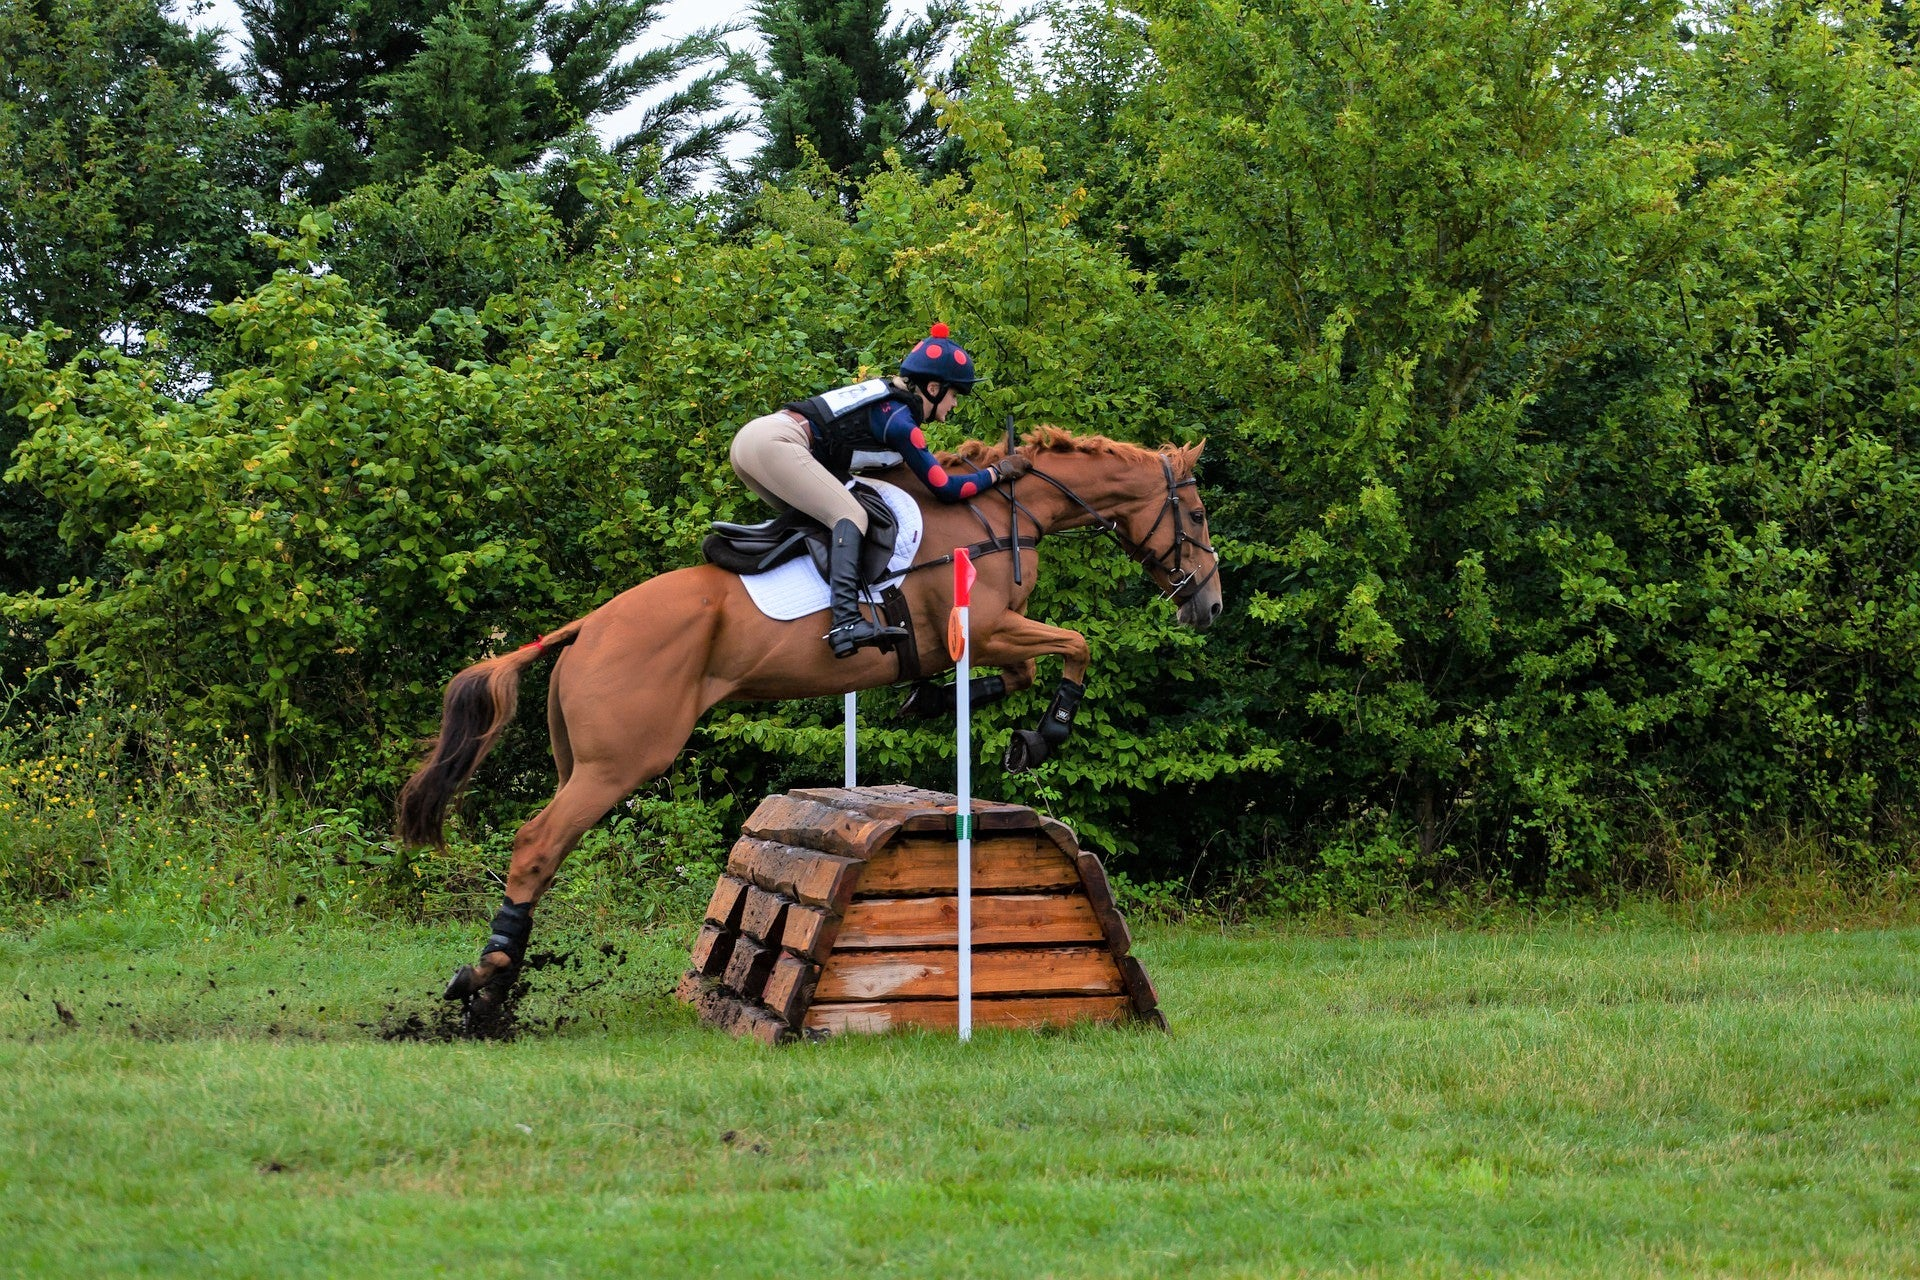 rider wearing horse-riding vest while jumping horse